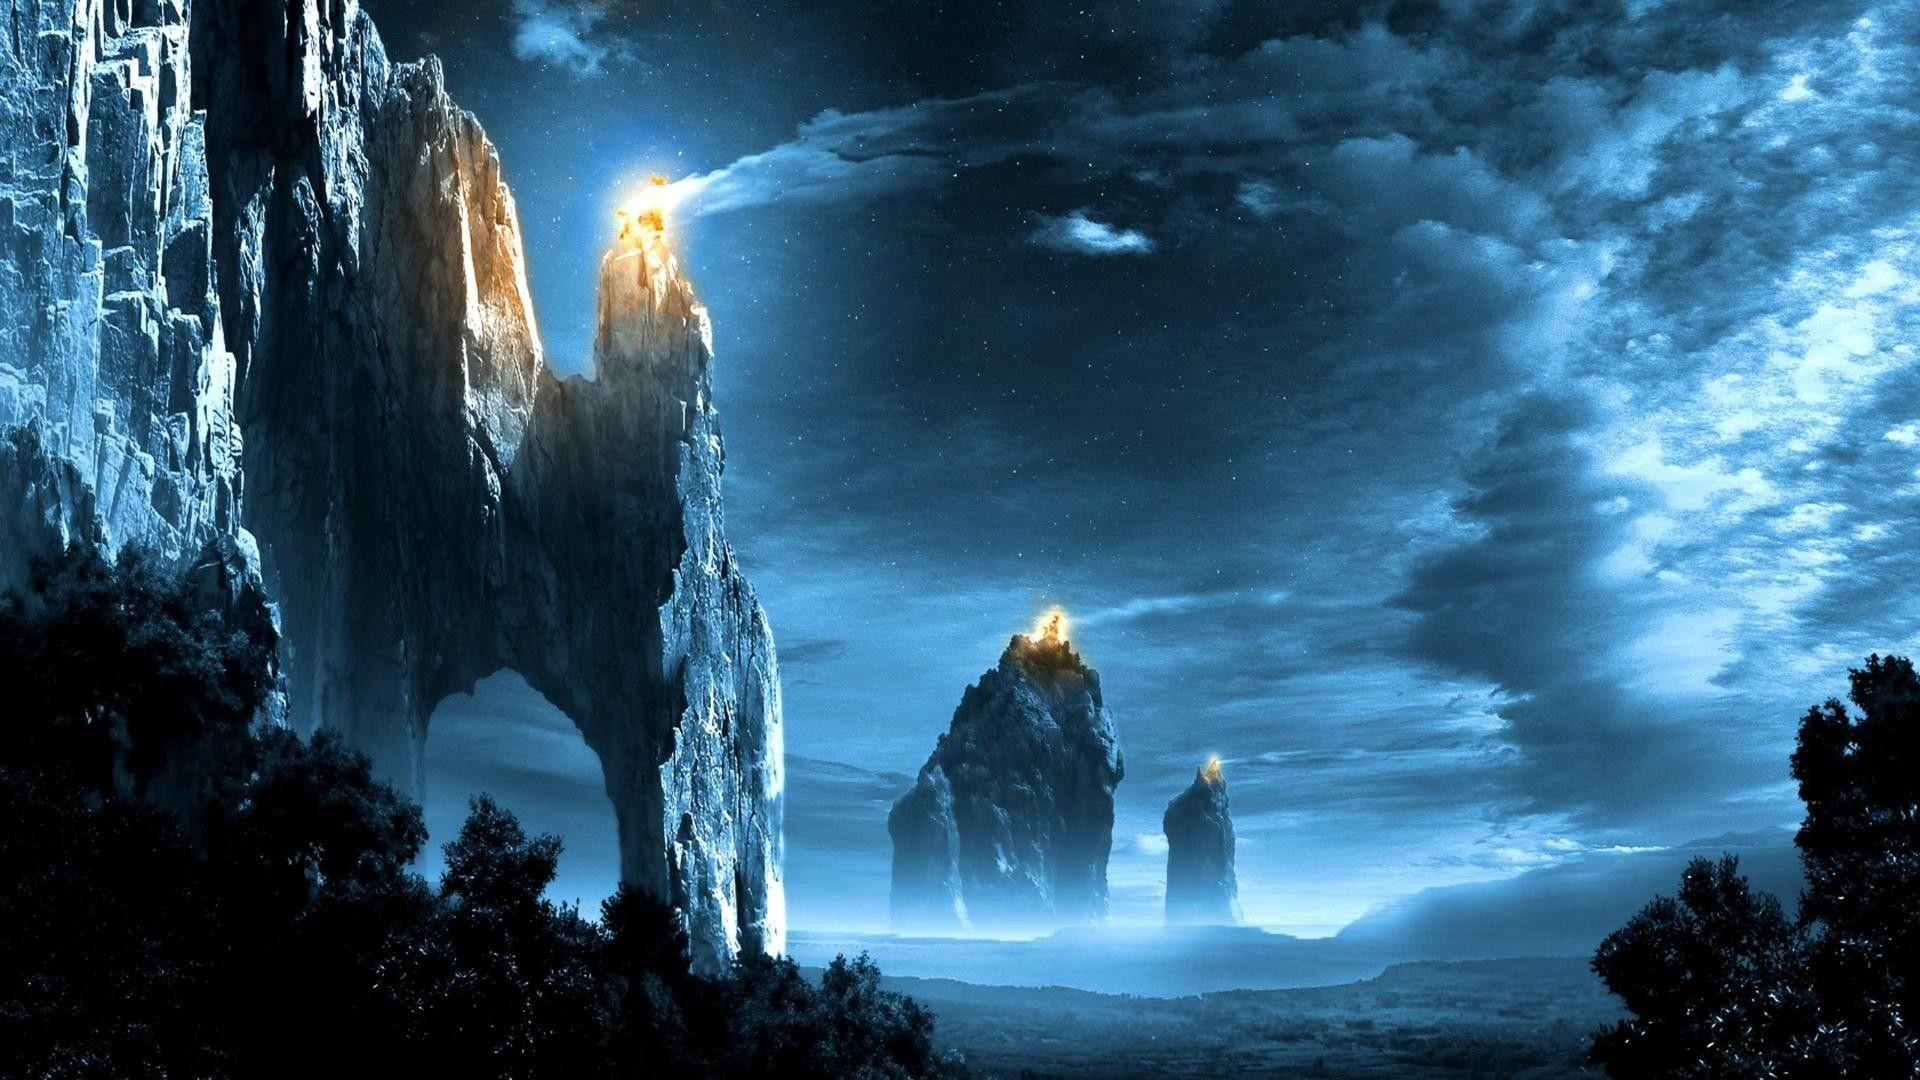 Lord of the Rings Landscape Wallpaper